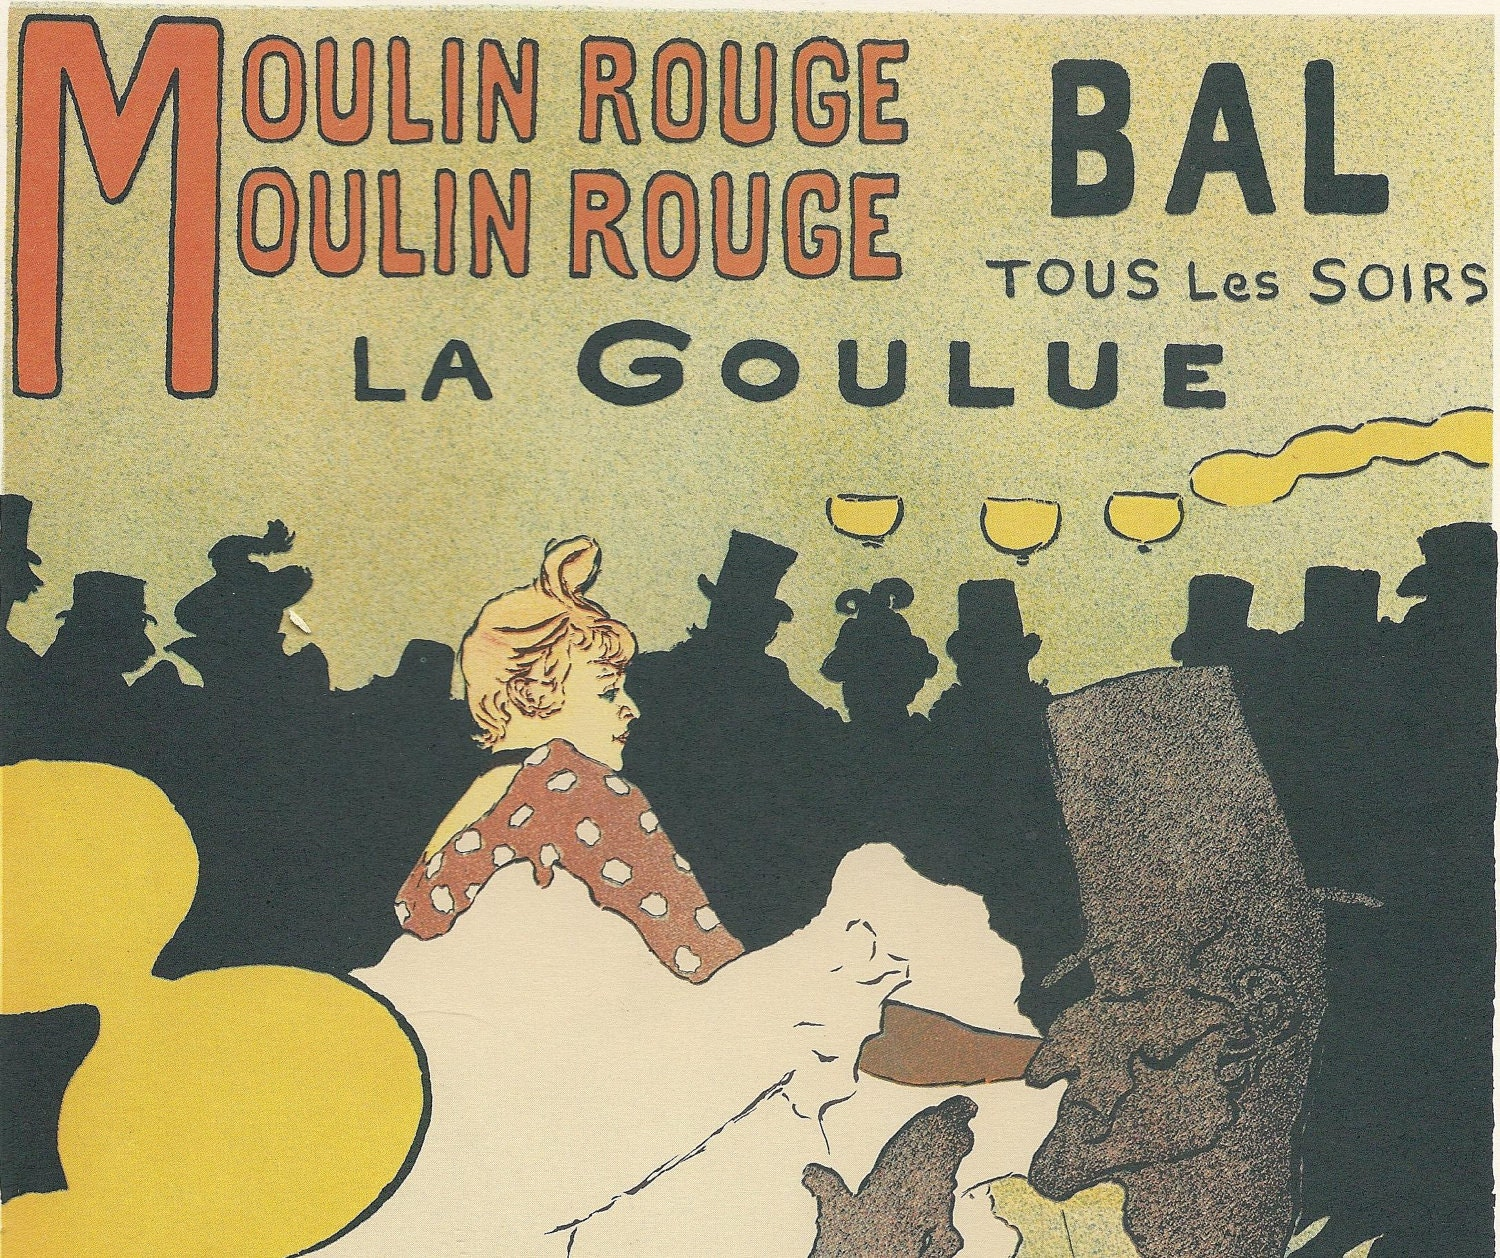 Vintage Poster Moulin Rouge Paris 1898 Henri de